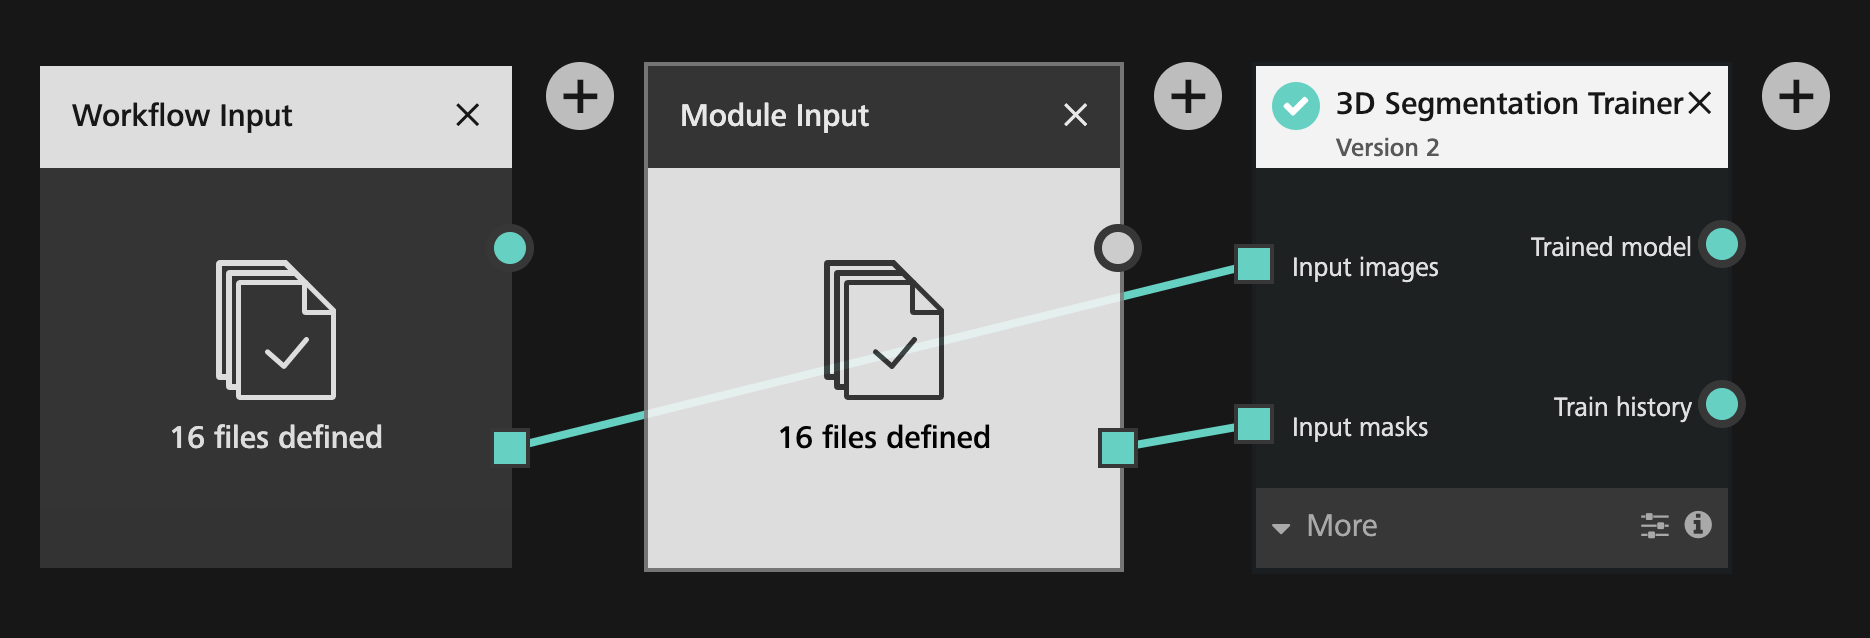 Module input module with a list of 16 files selected